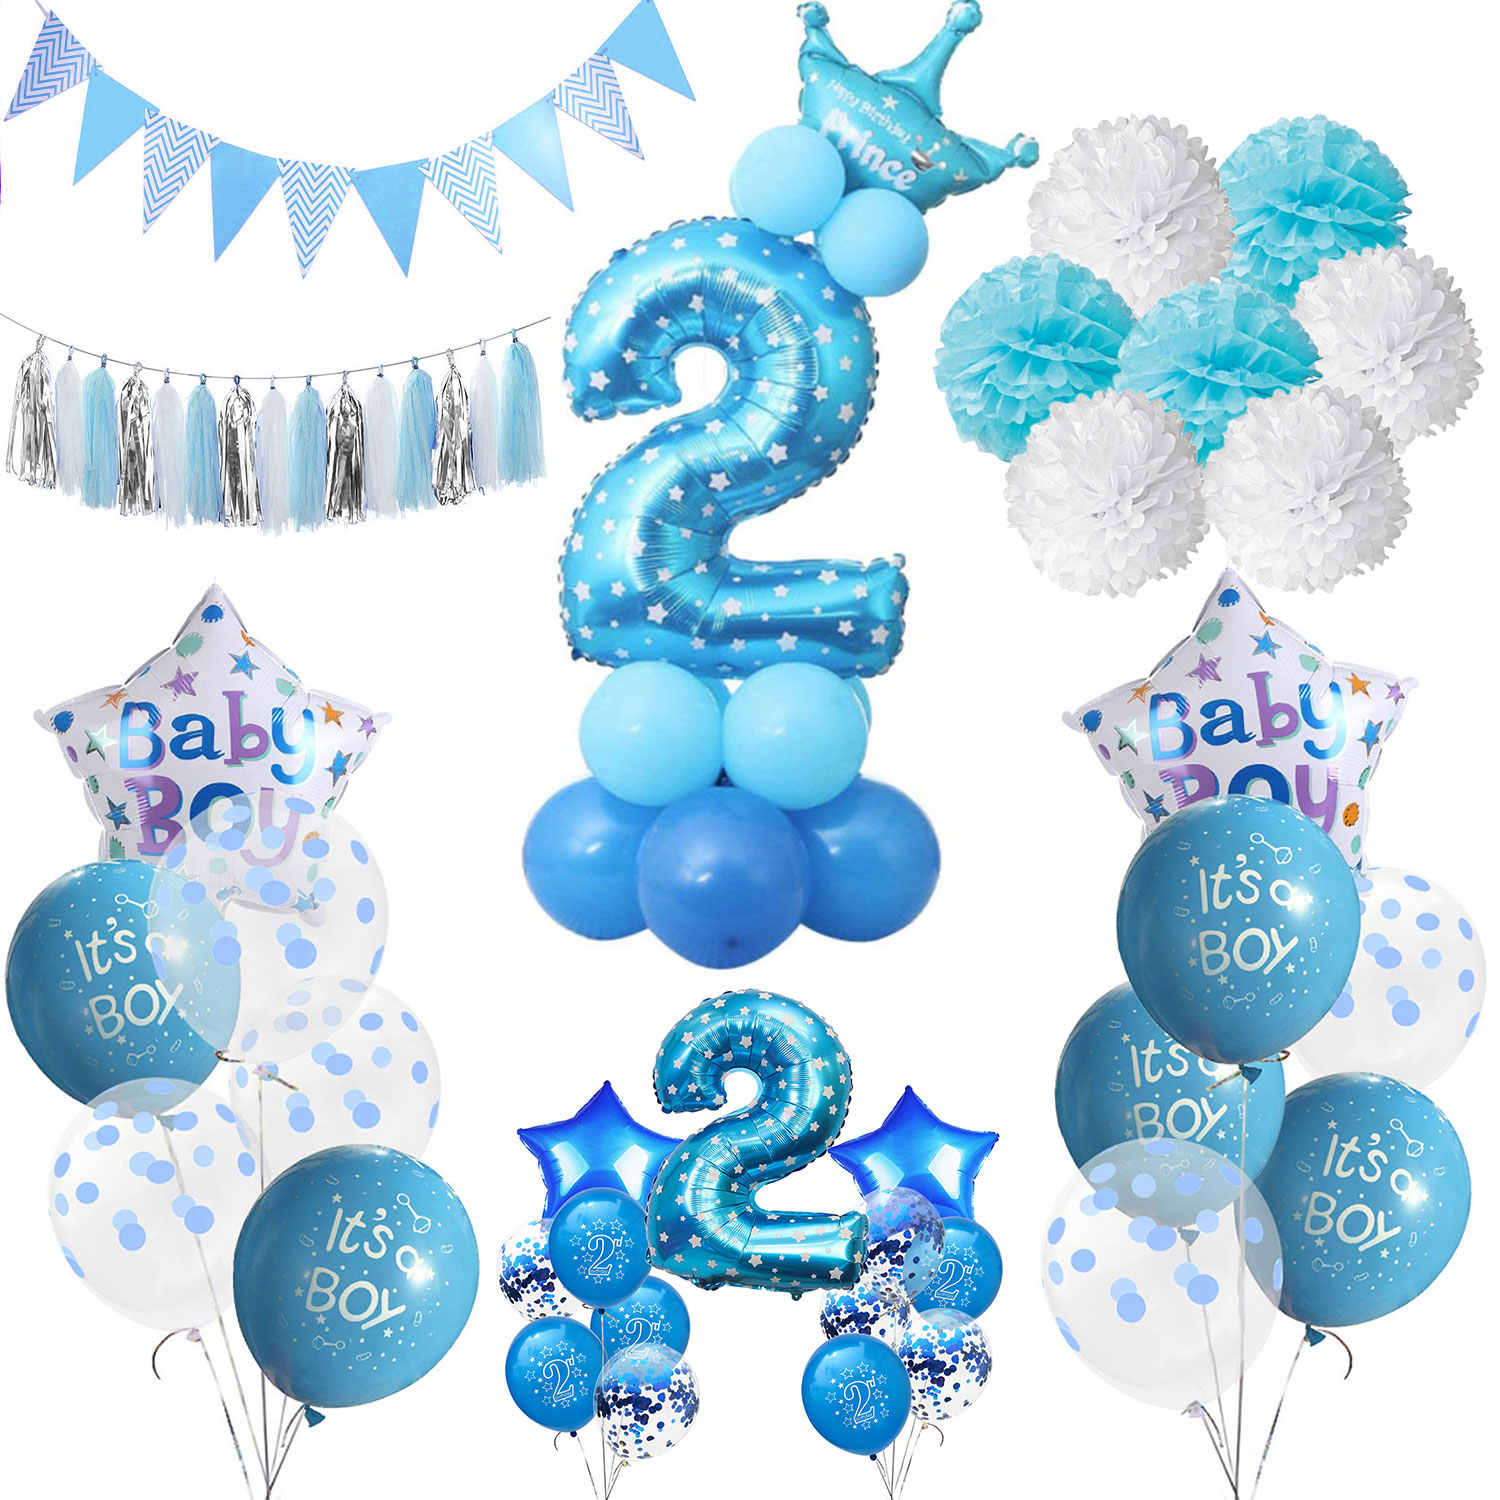 Zljq Boy 2 Year Old Birthday Party Decor Foil Confetti Balloons Banner Party Decorations Kids 2nd Birthday Blue Boy Decorations Ballons Accessories Aliexpress